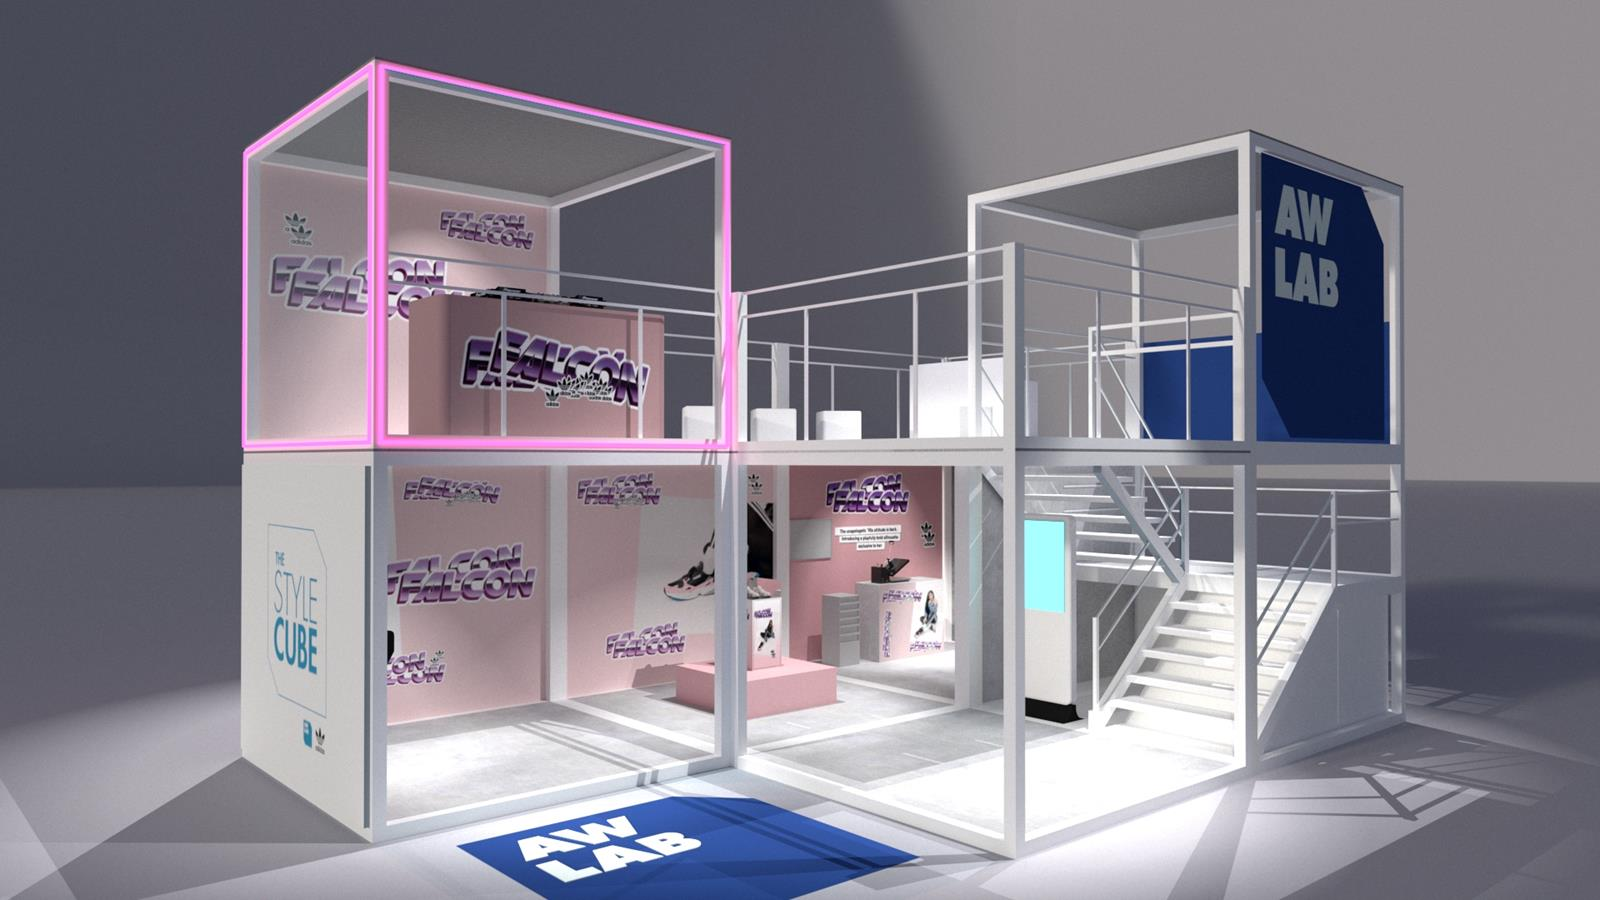 The Style Cube Il Temporary Street Culture Space Di Aw